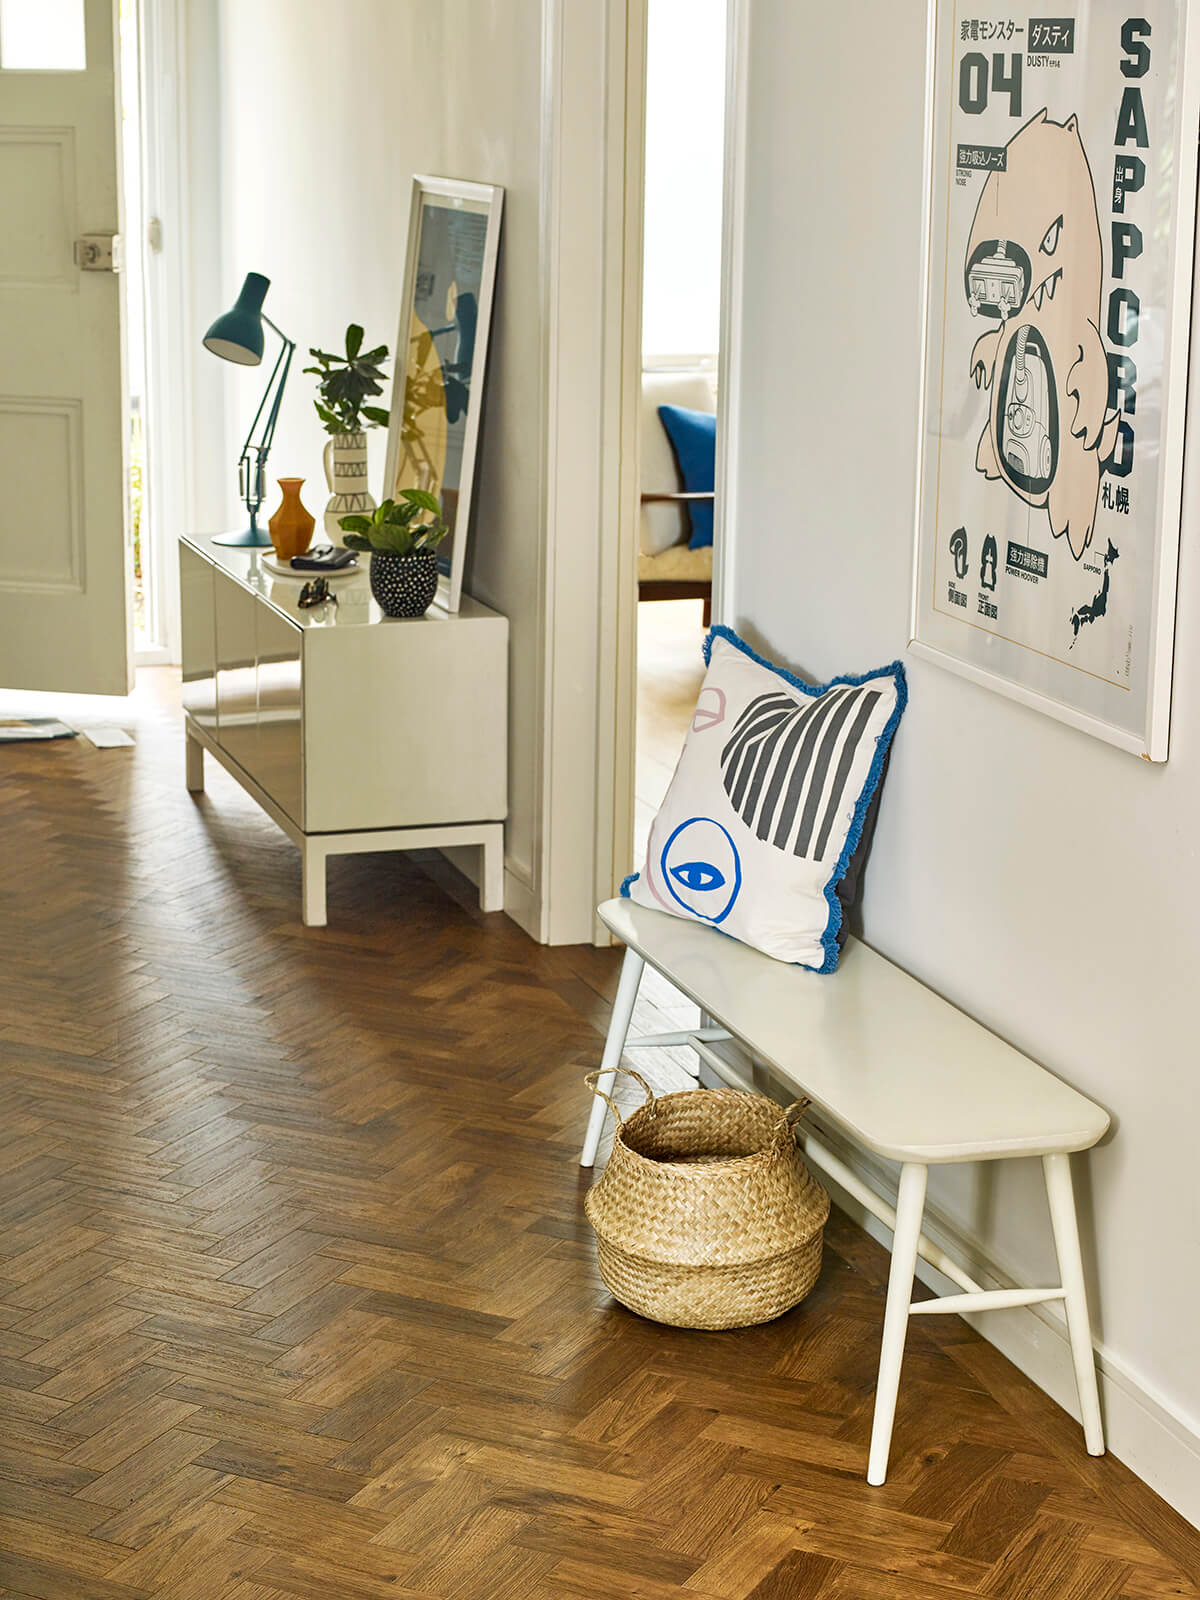 Amtico Spacia, Royal Oak, Parquet laying pattern